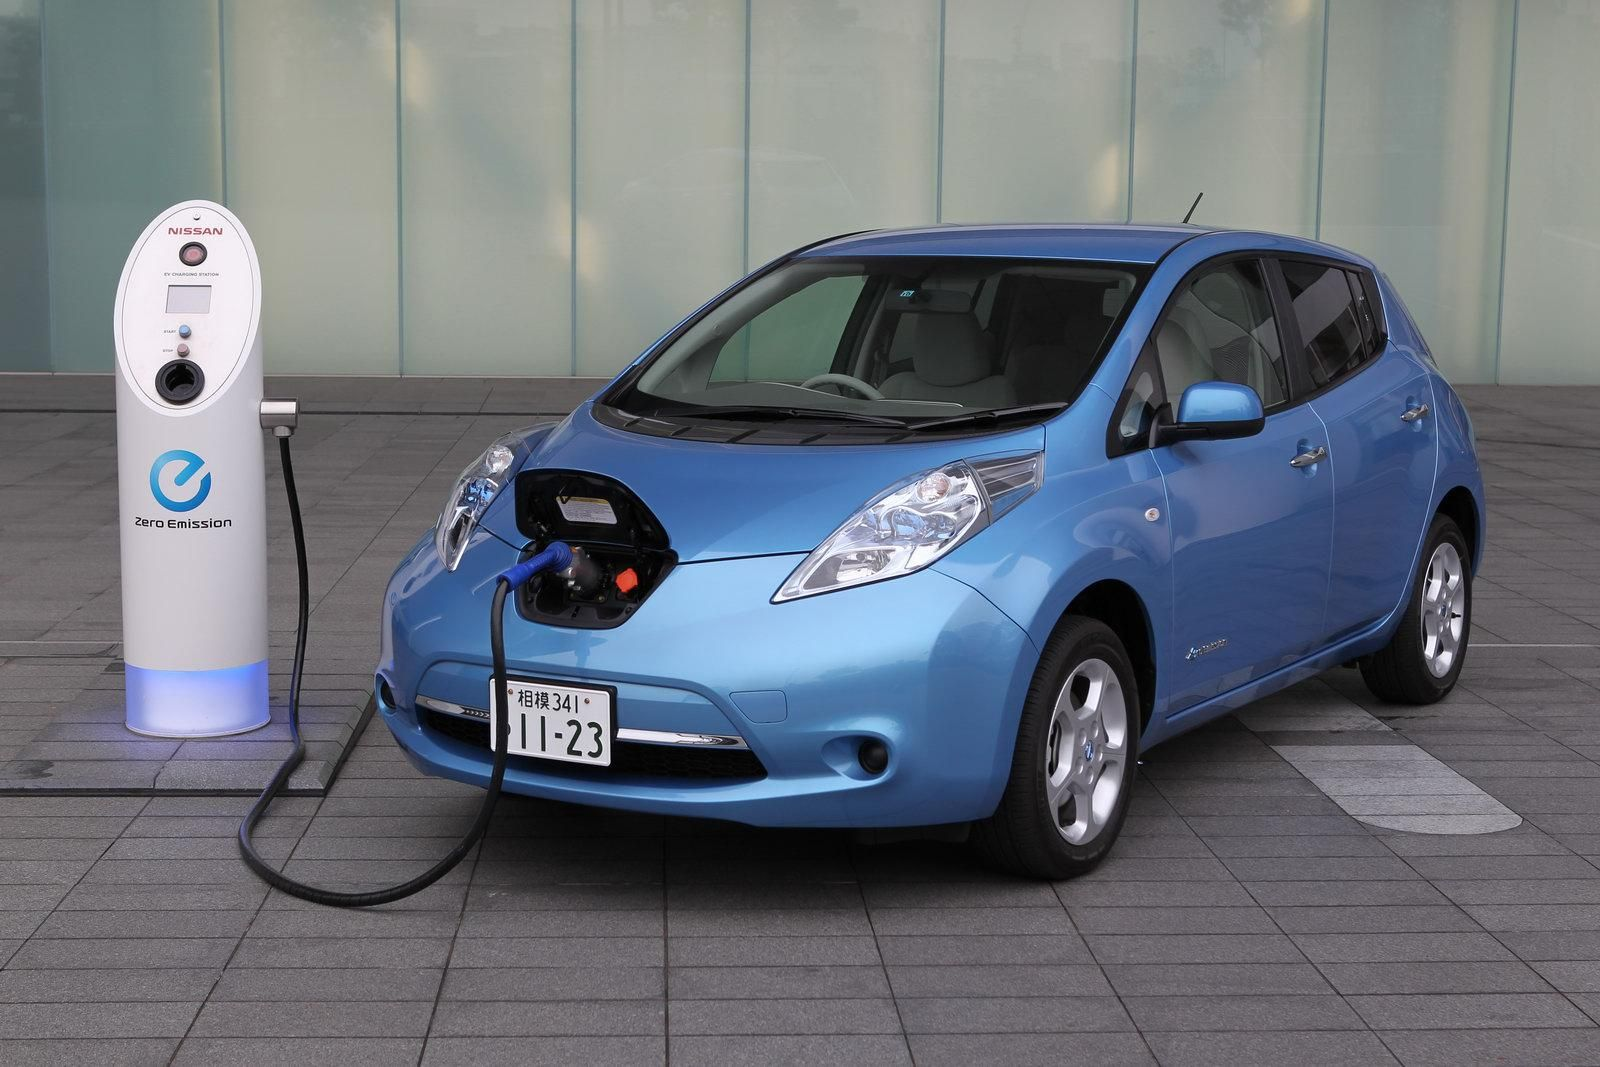 The electric cars are the future see our latest comparison between the 2013 nissan leaf electric and the 2014 chevy spark electric here